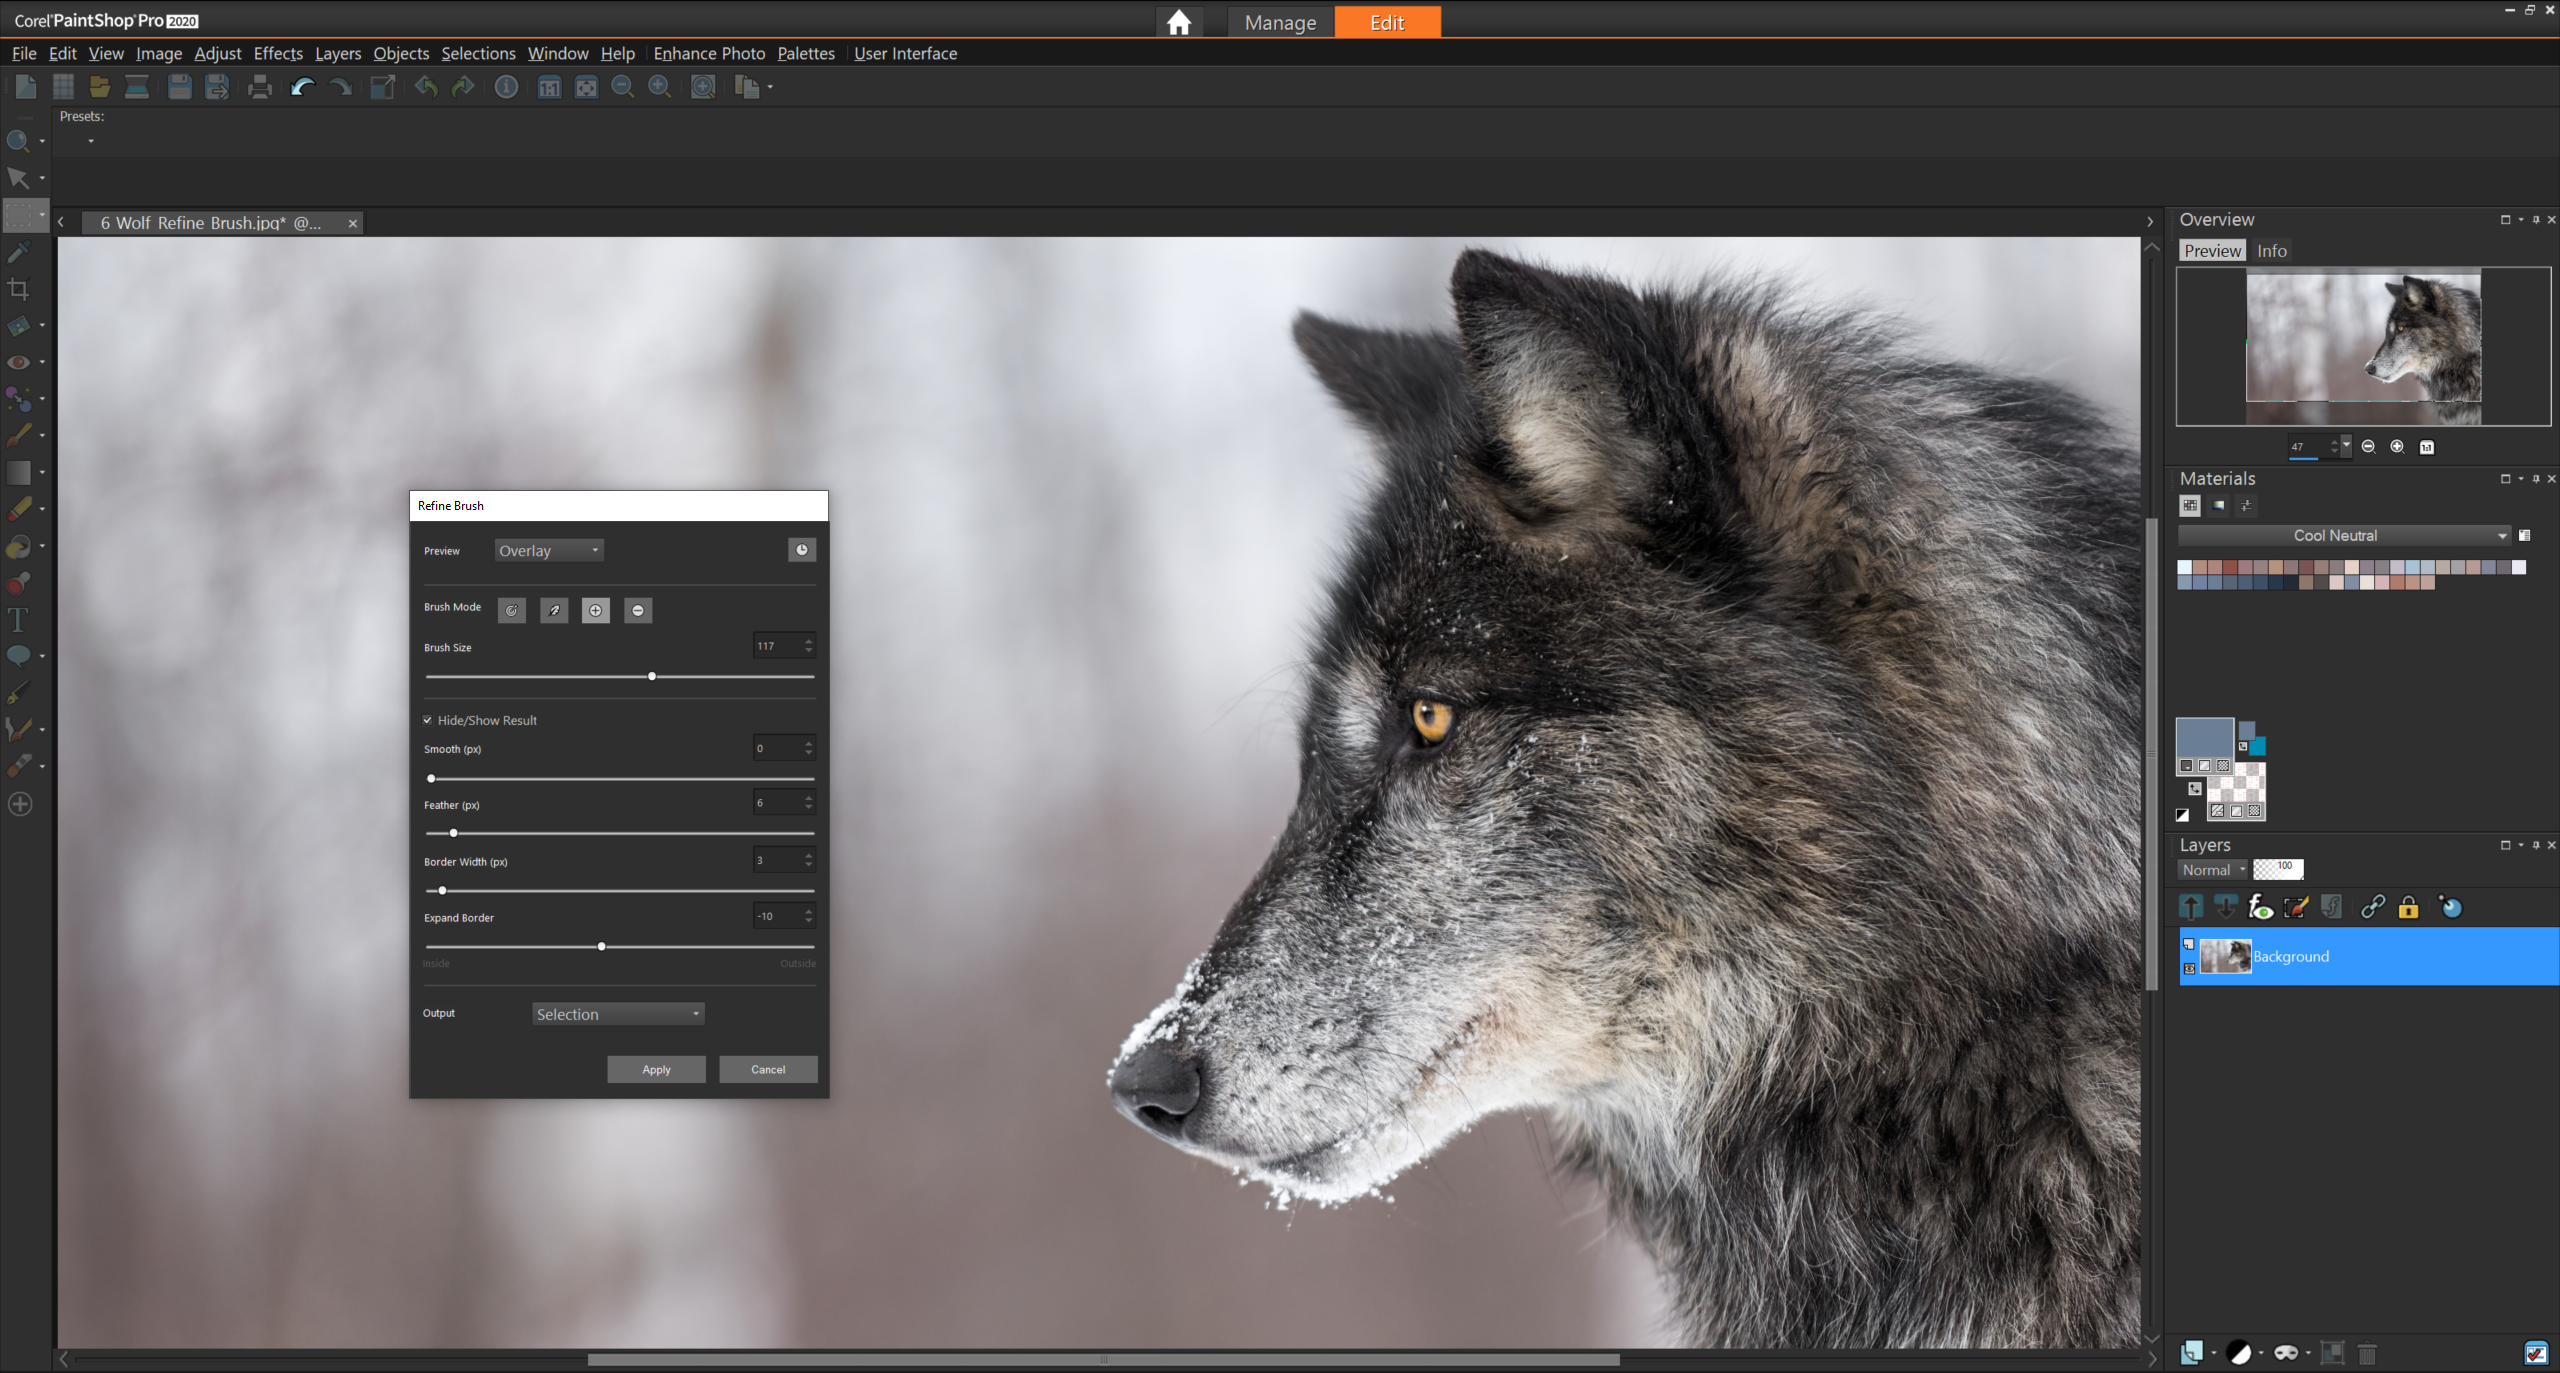 Corel Paintshop Pro 2020 Launches With New Photography Workspace Interface Digital Photography Review